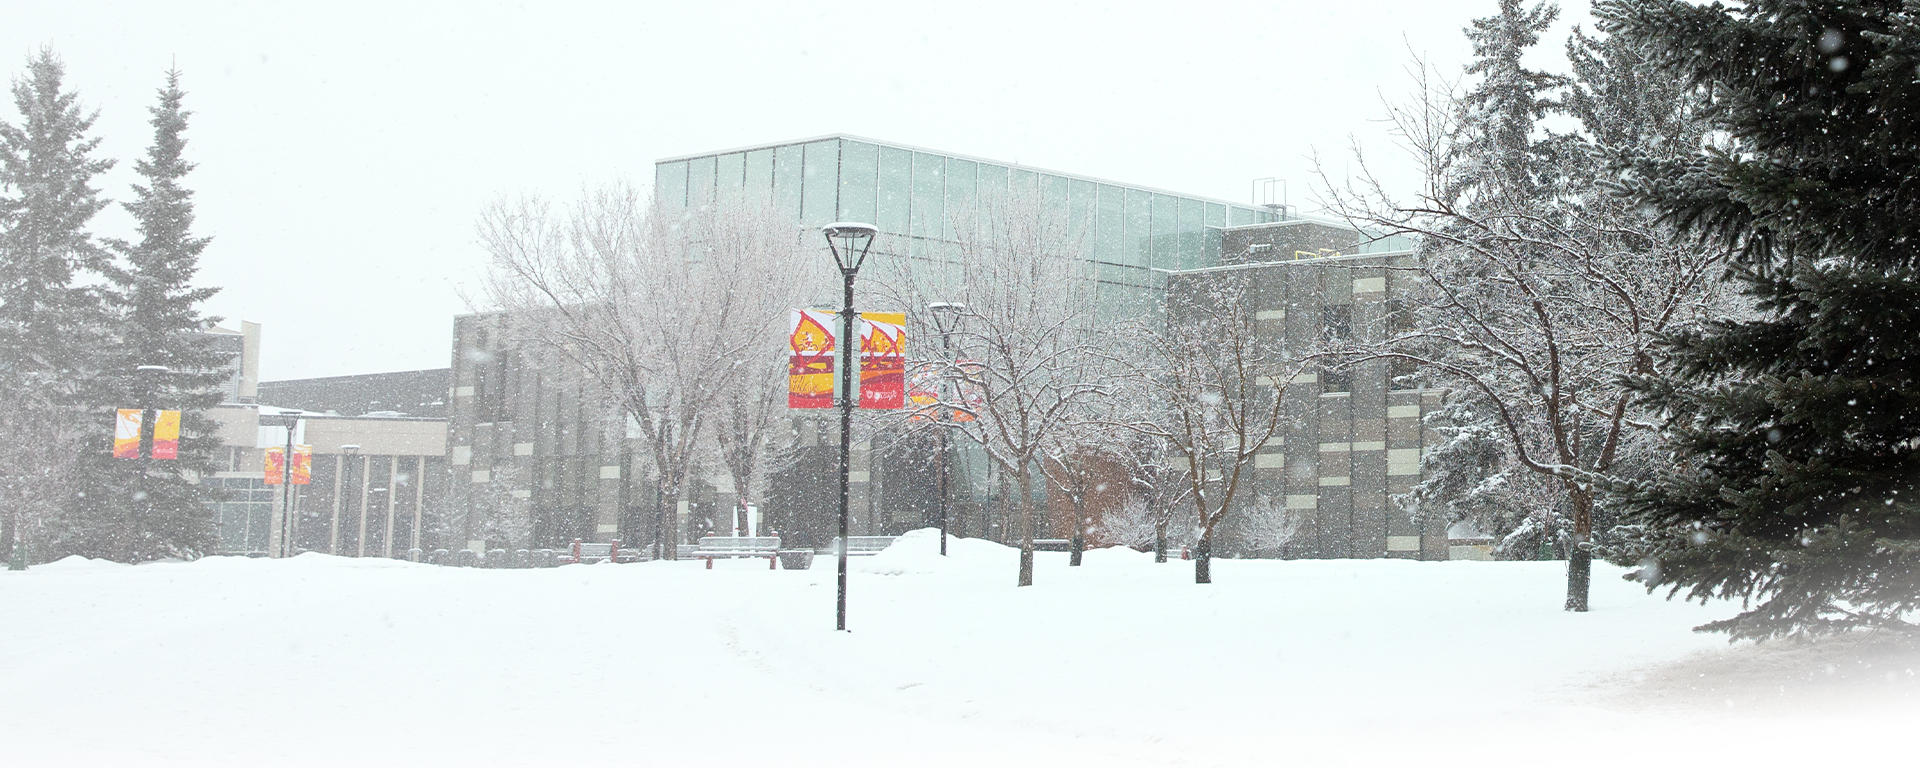 Taylor Institute building in the winter